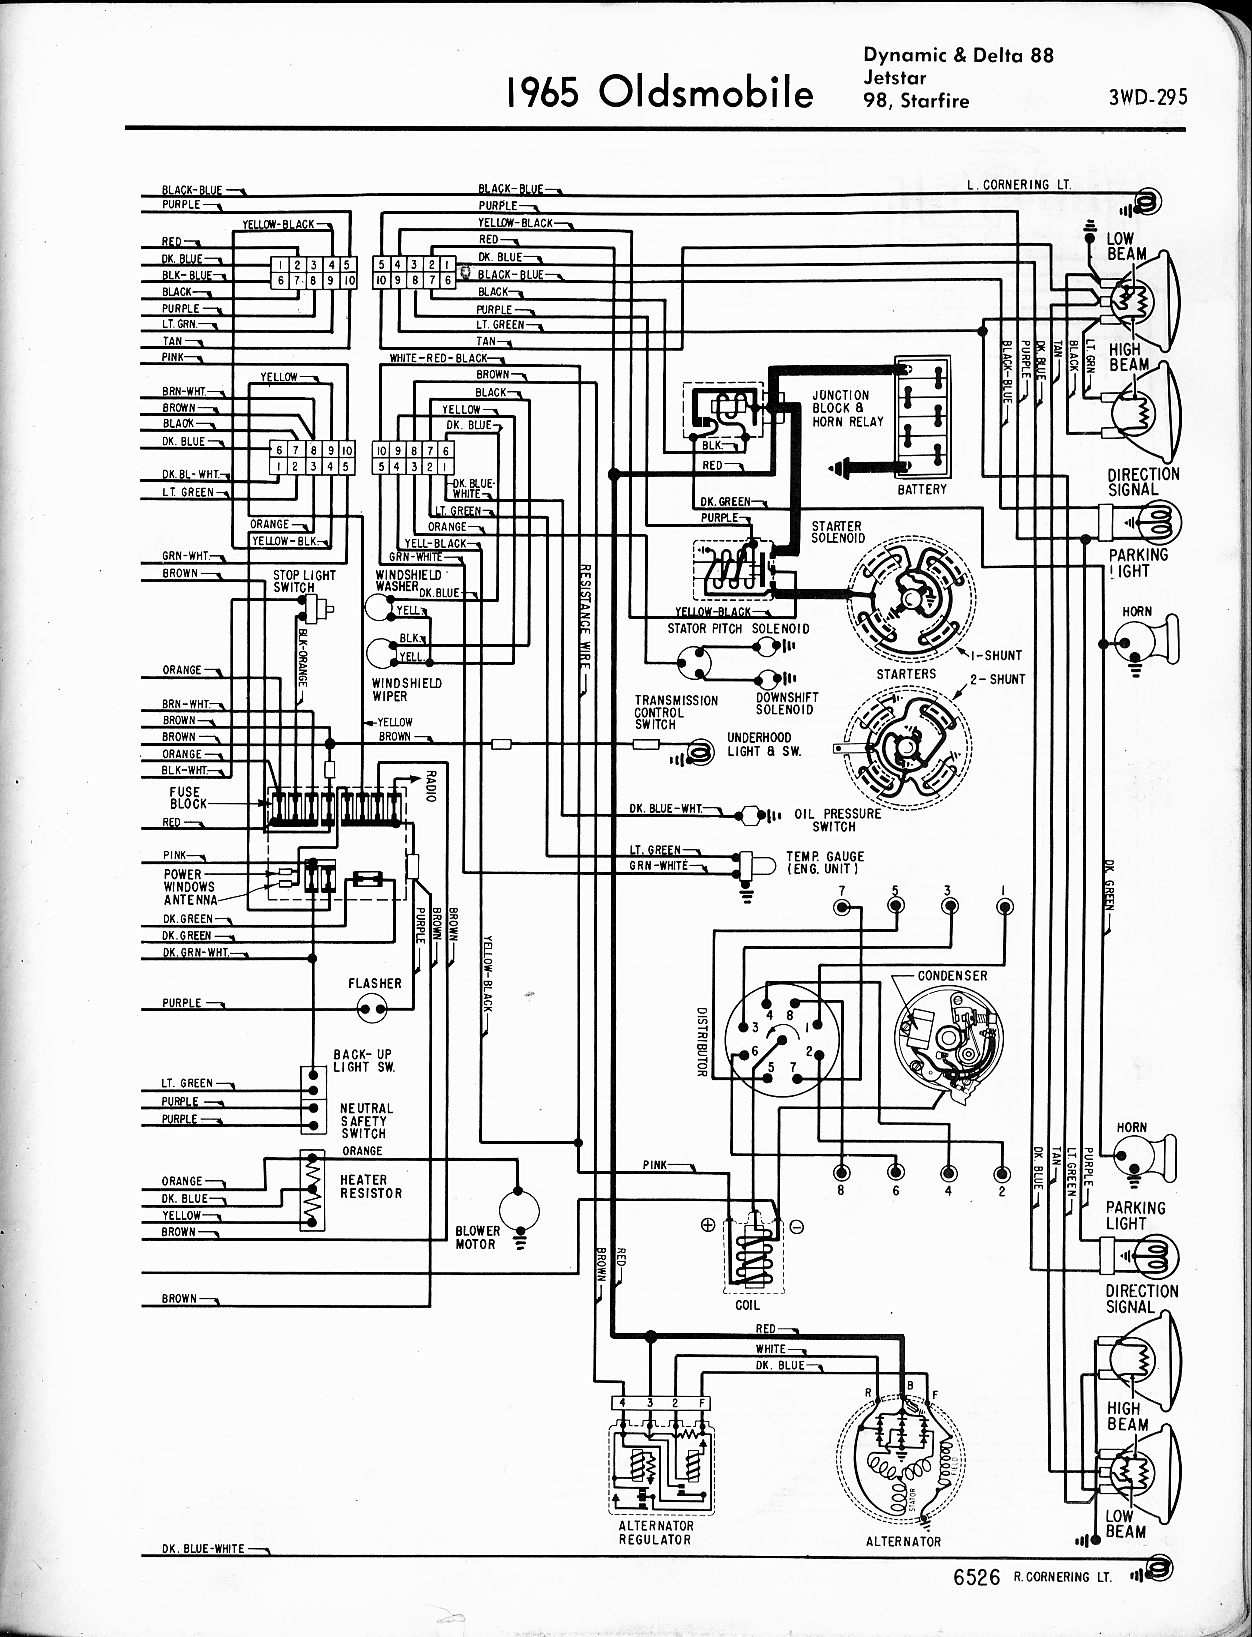 MWire5765 295 oldsmobile delta 88 fuse box wiring diagram 1984 oldsmobile delta 88 wiring diagram at soozxer.org